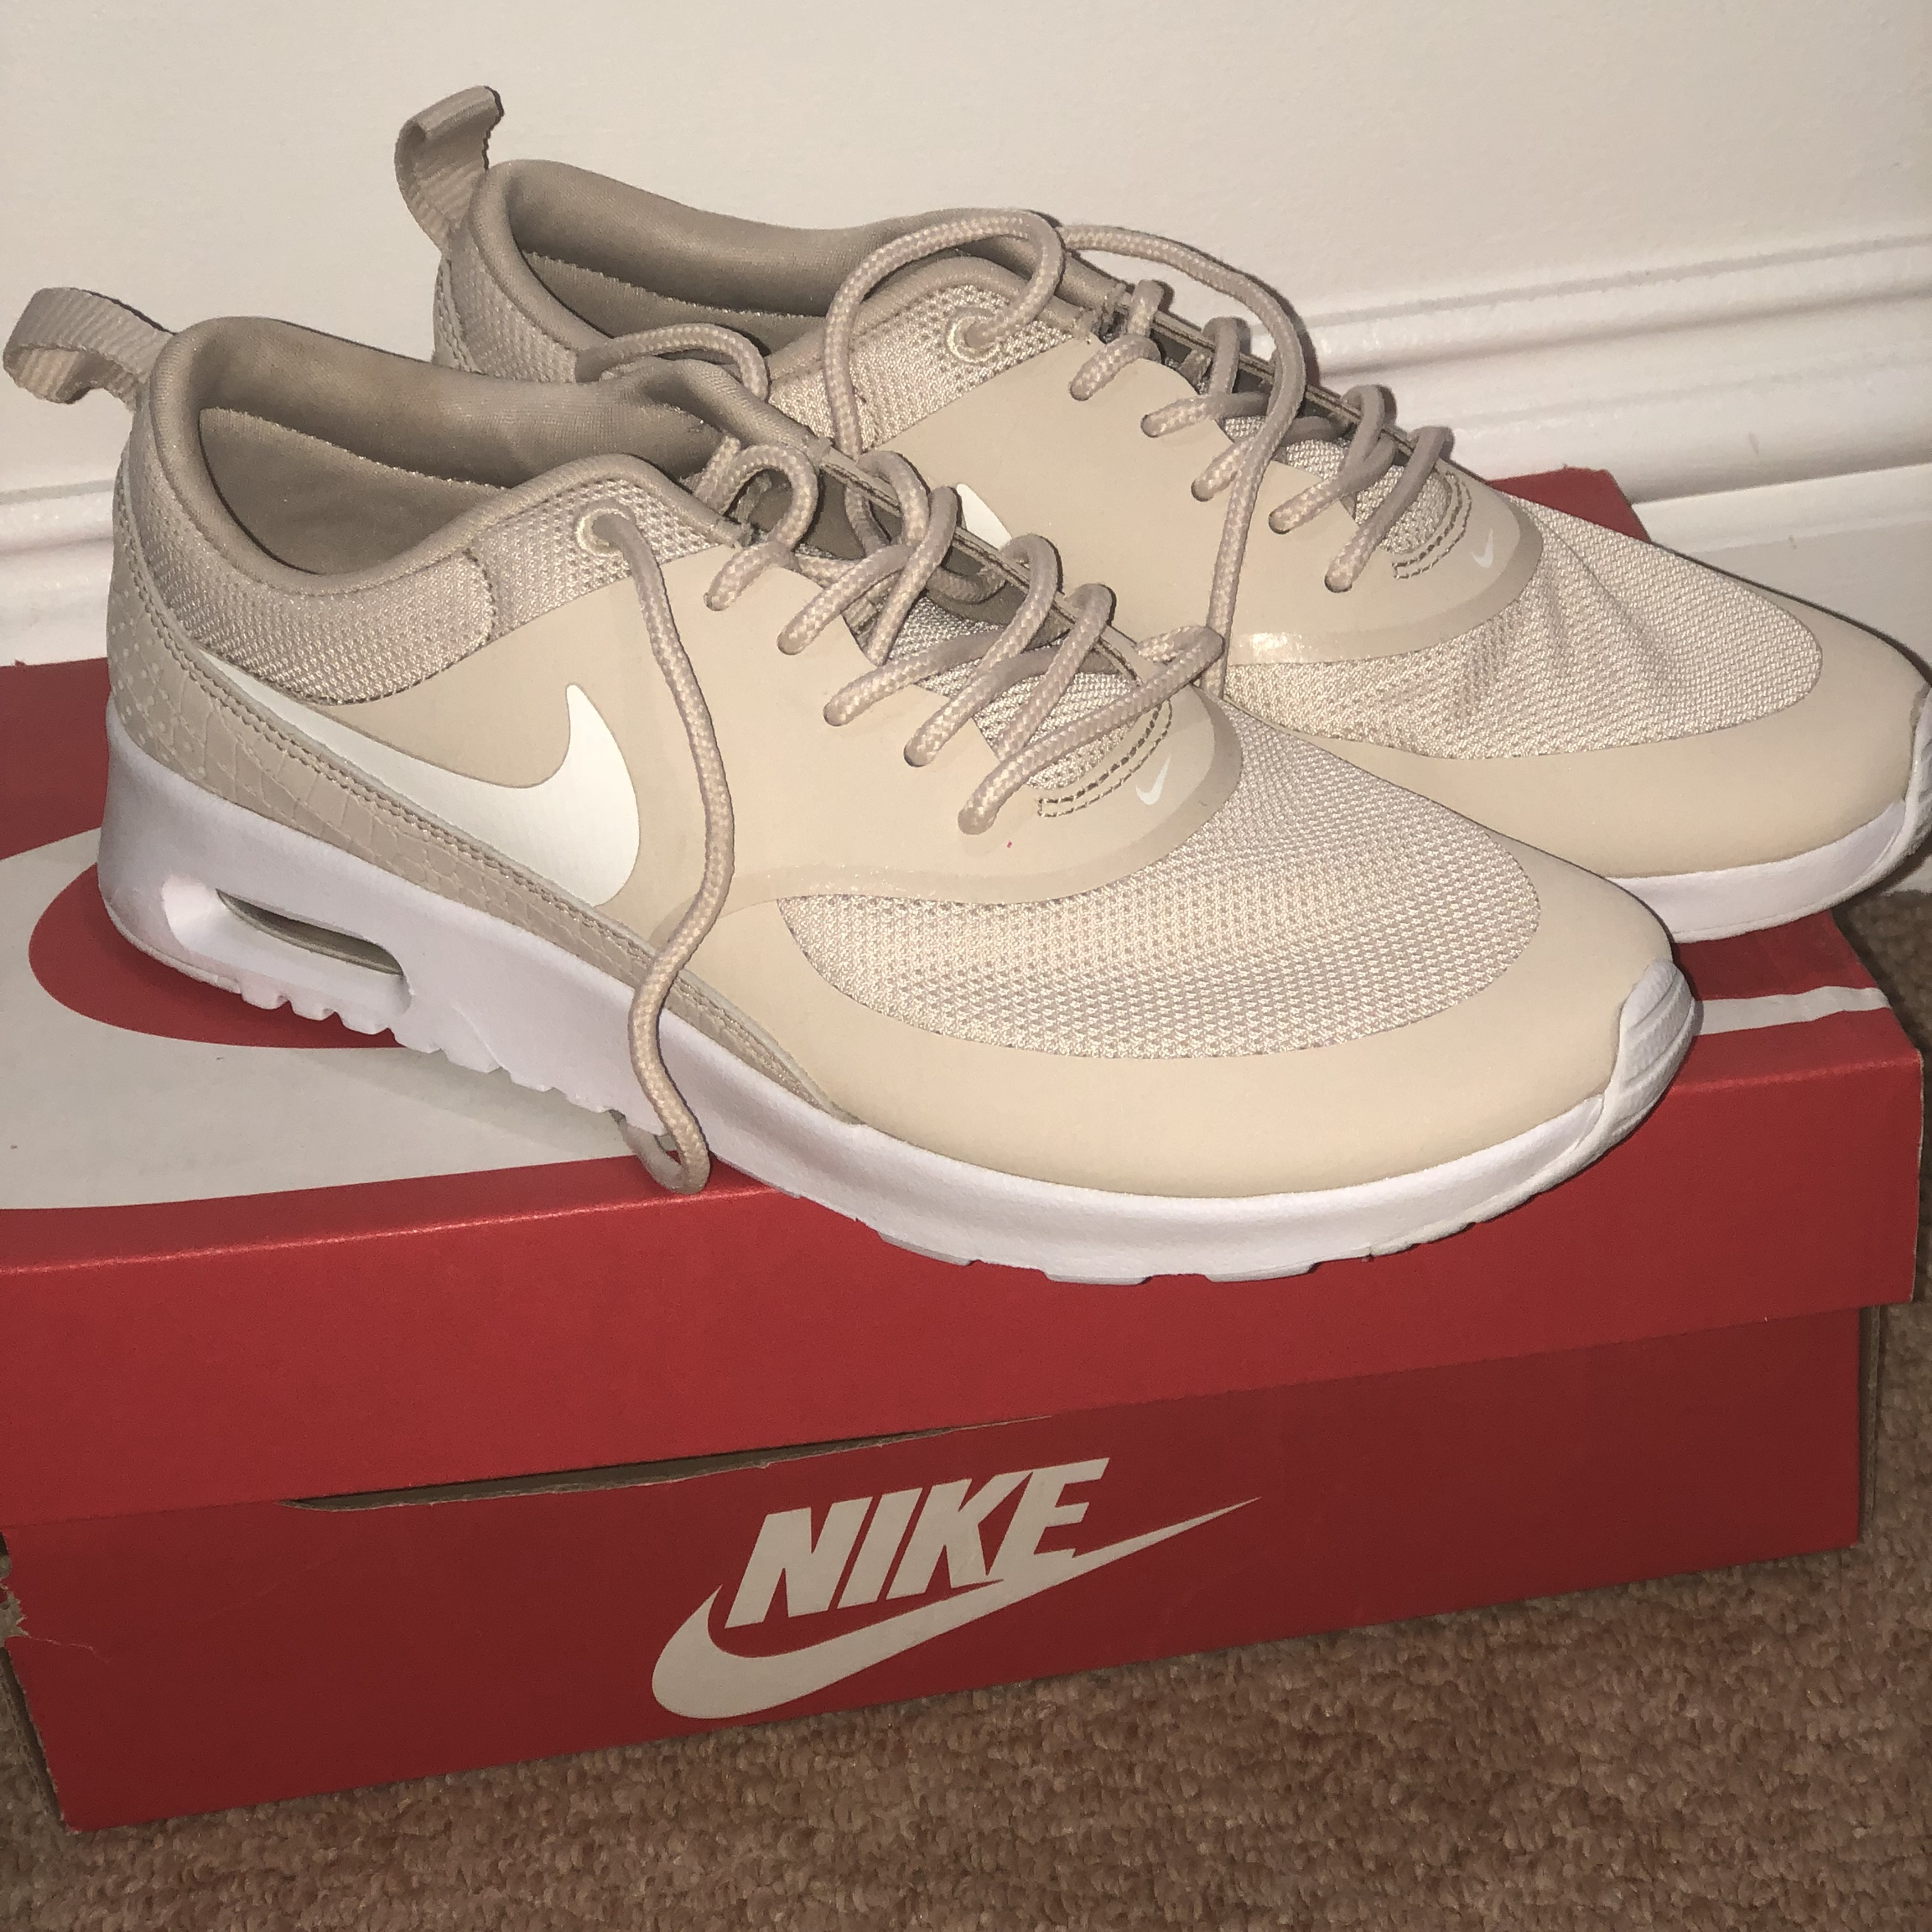 Nike air max Thea women's shoe: LIMITED EDITION Depop